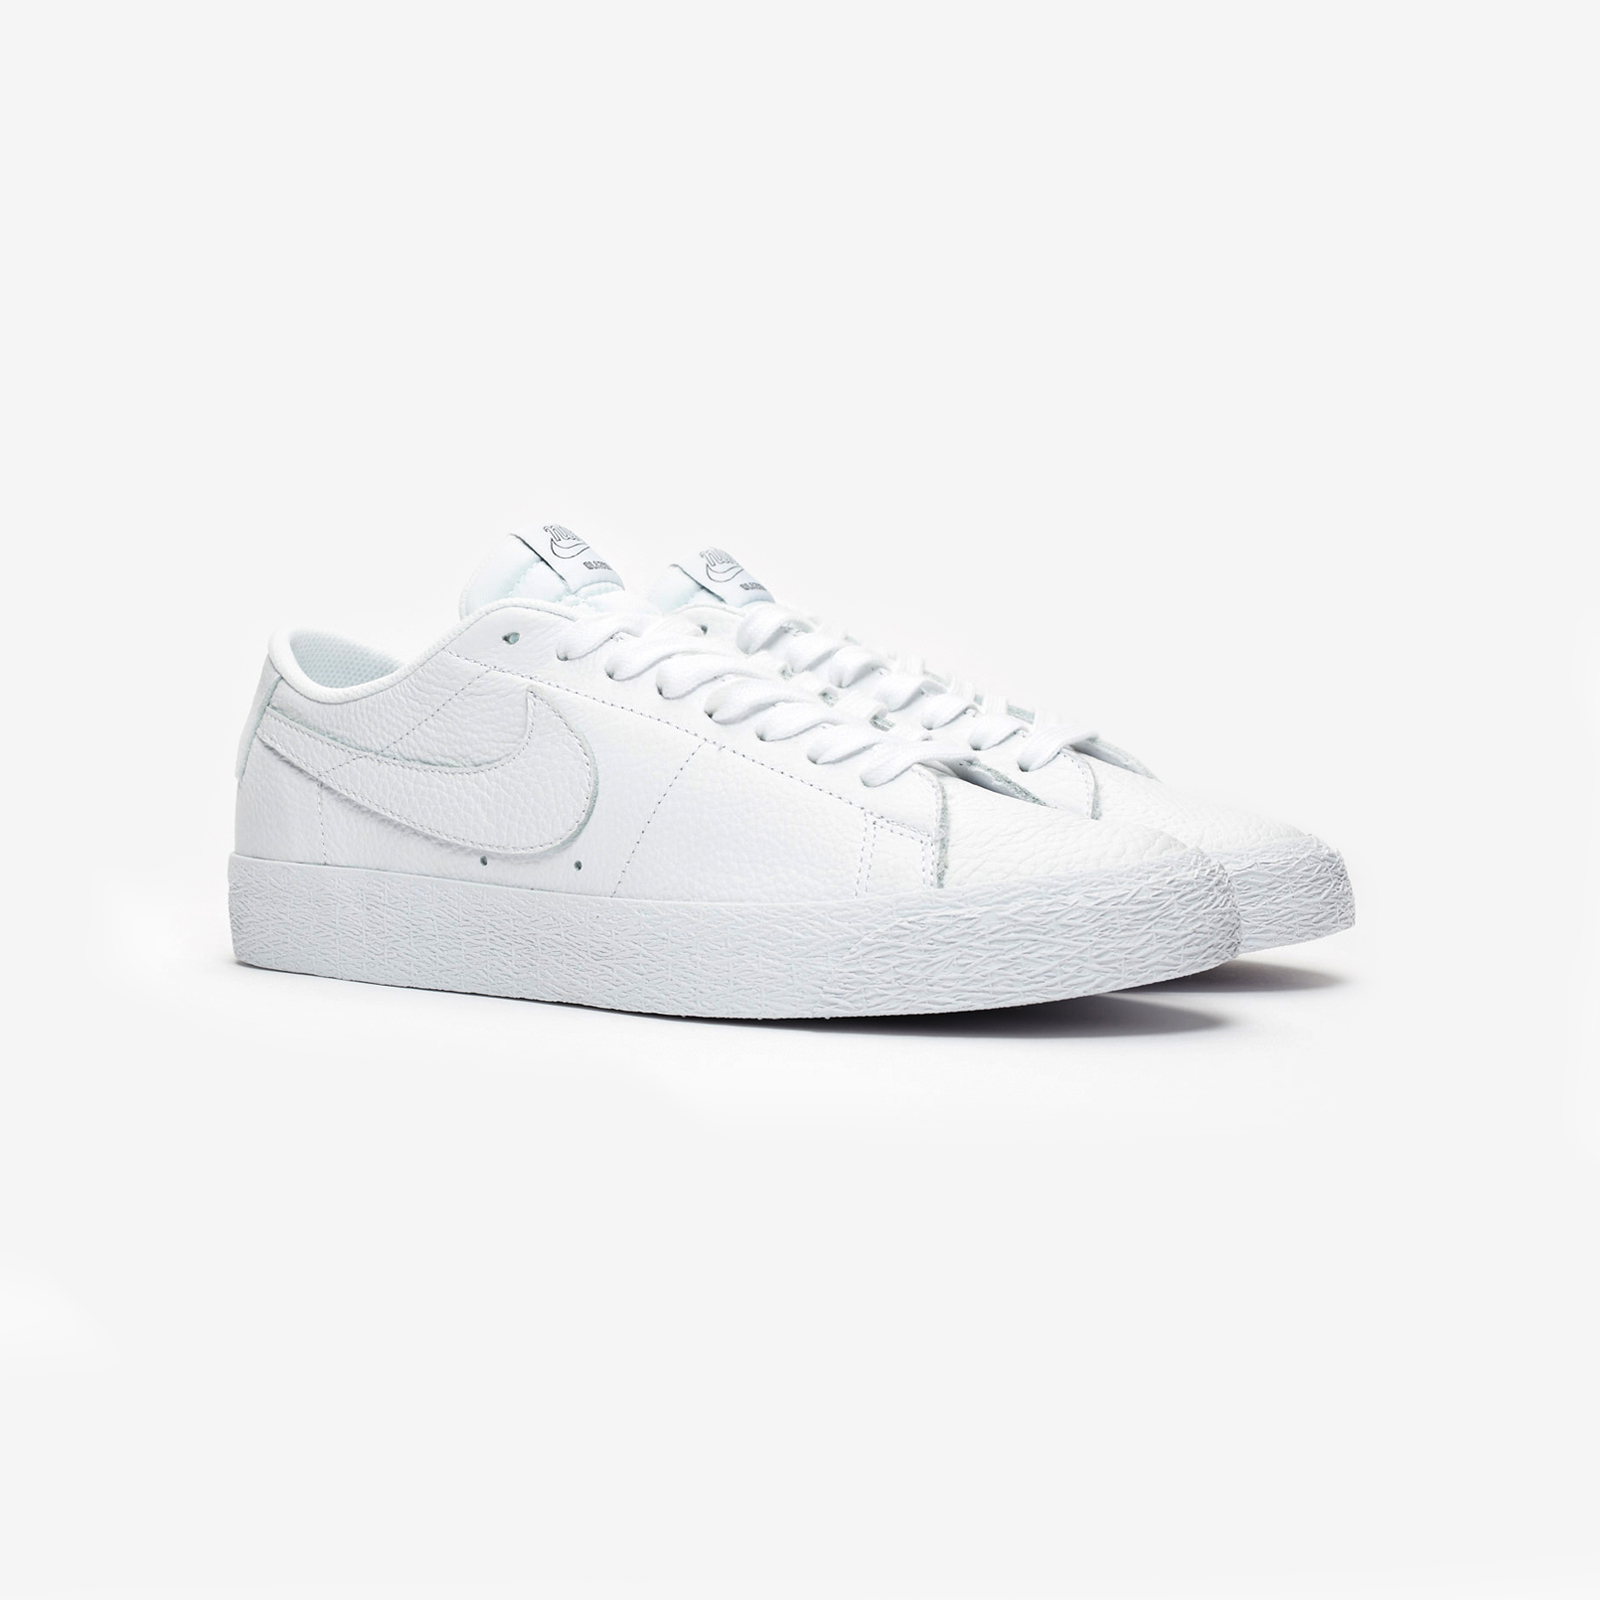 6fd3774993c7 Nike Zoom Blazer Low NBA - Ar1576-114 - Sneakersnstuff